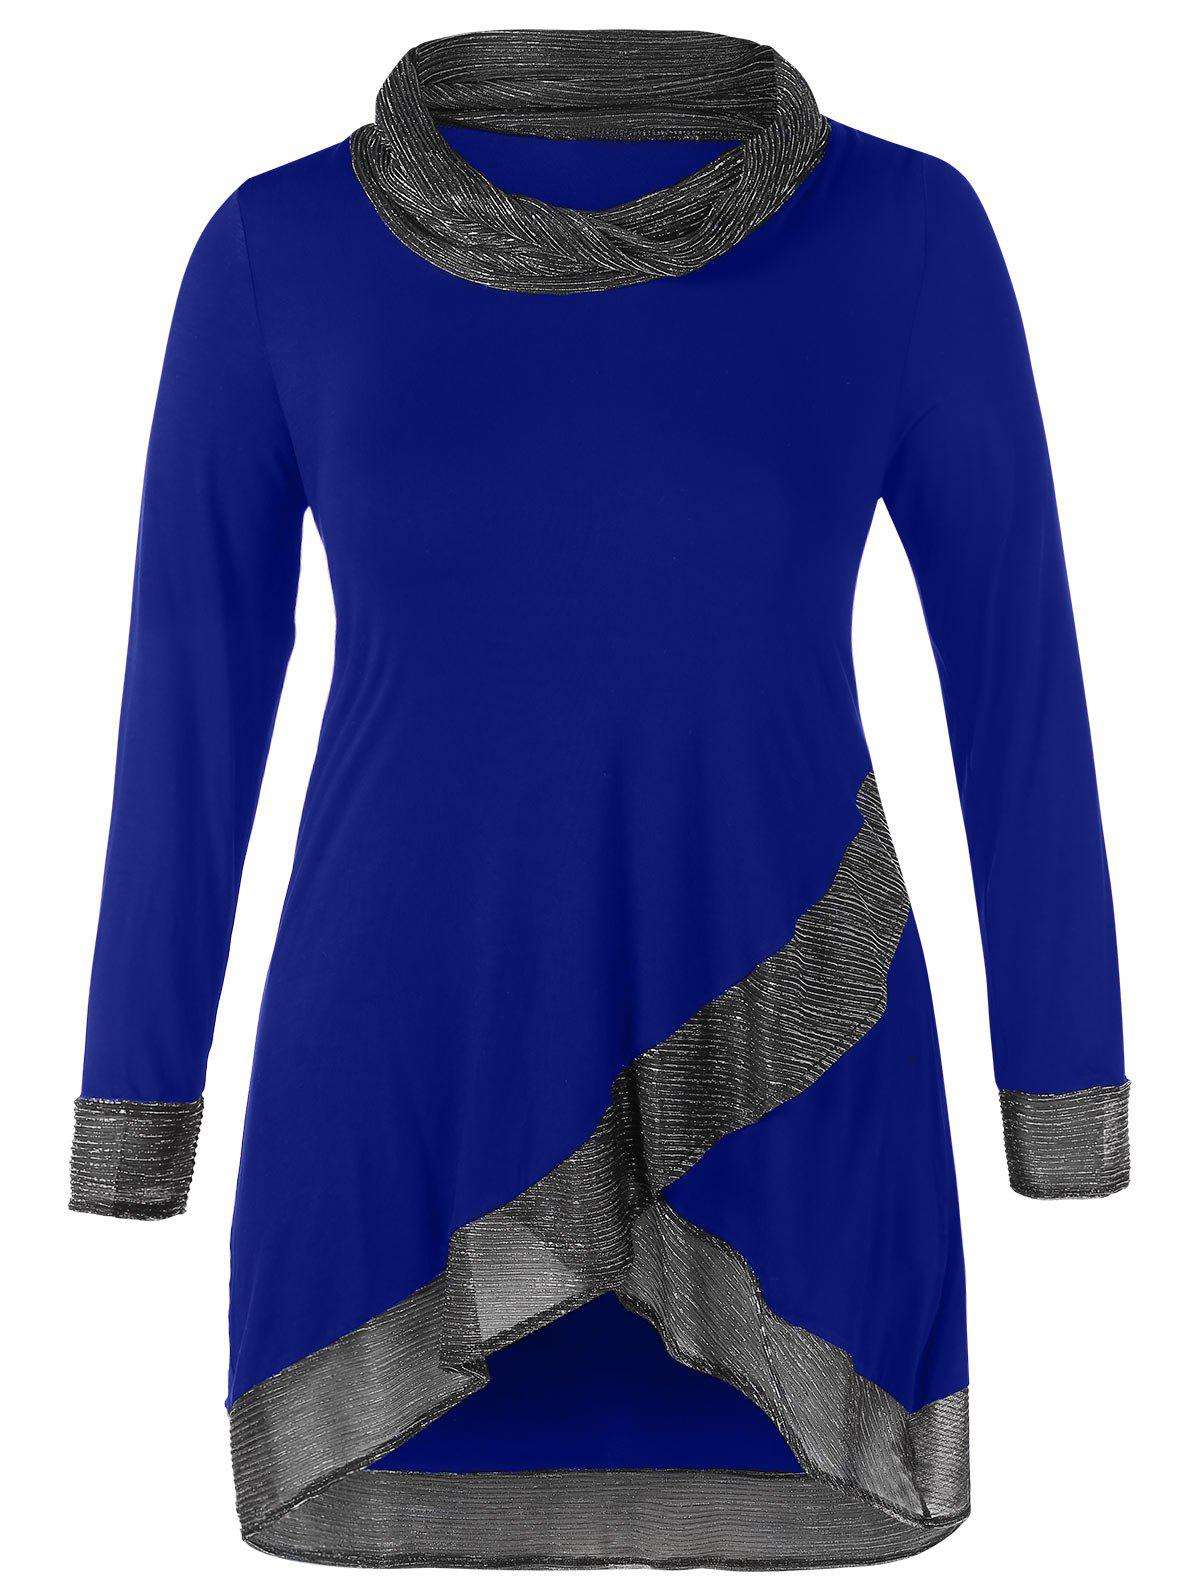 Buy Cowl Neck Thread Plus Size Tunic Top